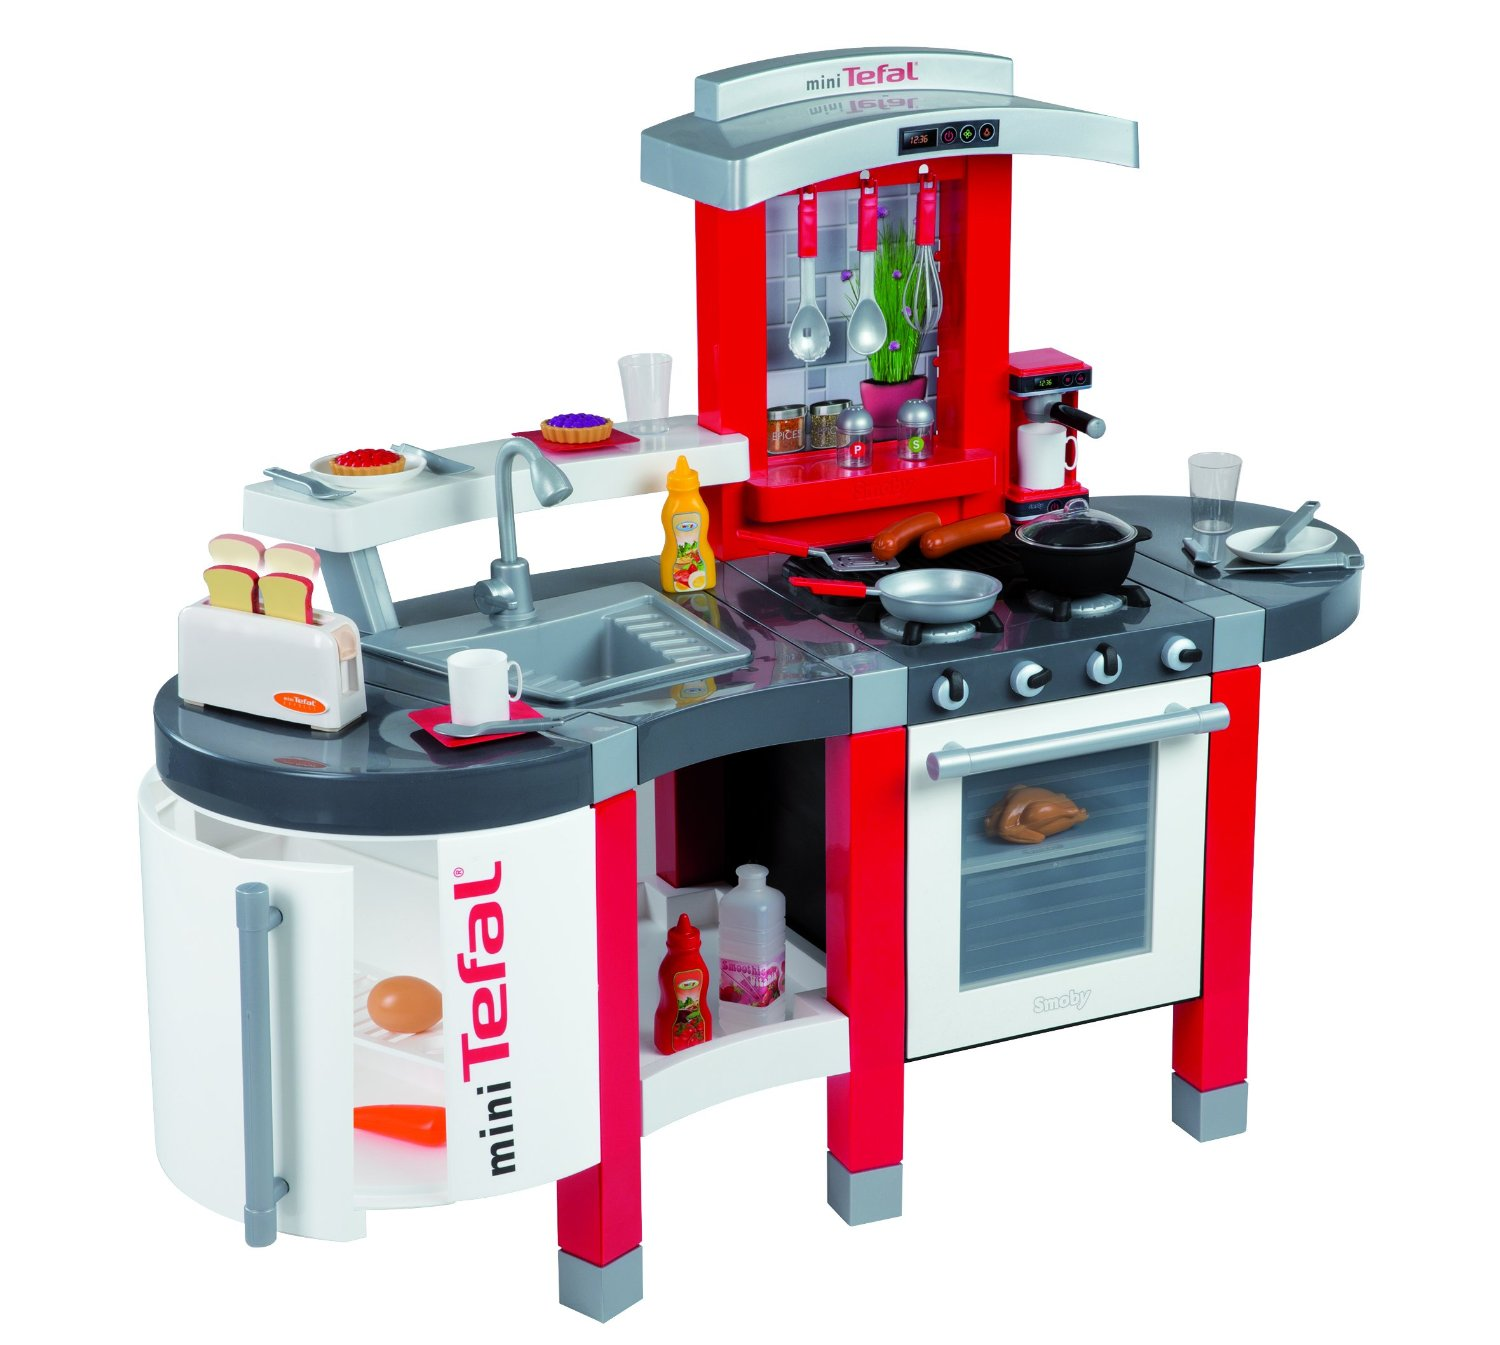 smoby tefal super chef küche excellence - kinderküche ratgeber